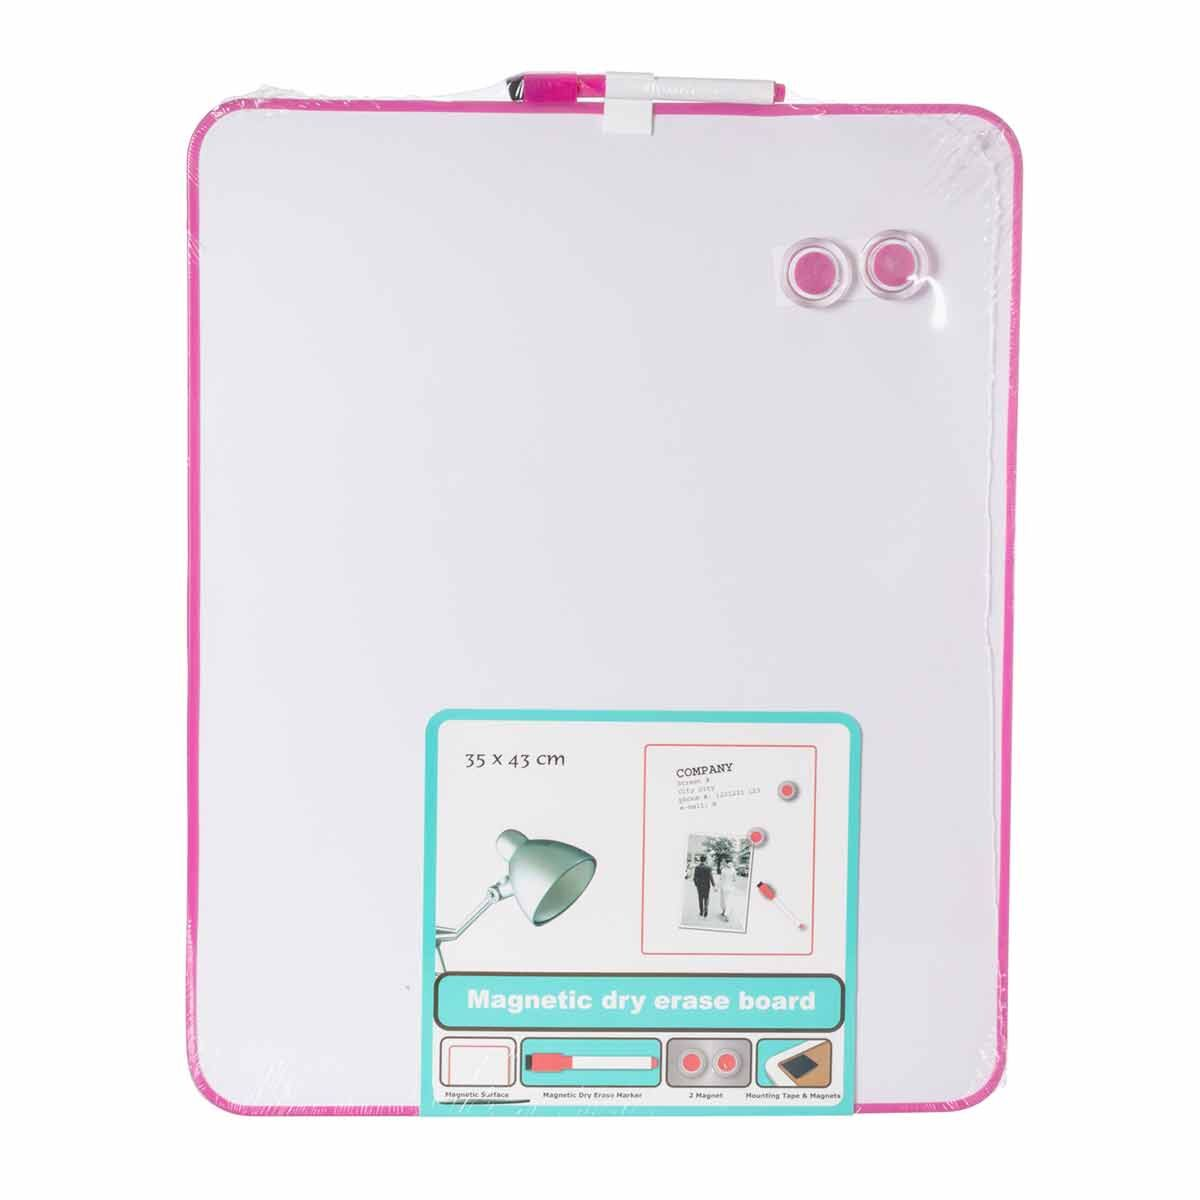 Magnetic Dry Erase Board 35x43cm Pink